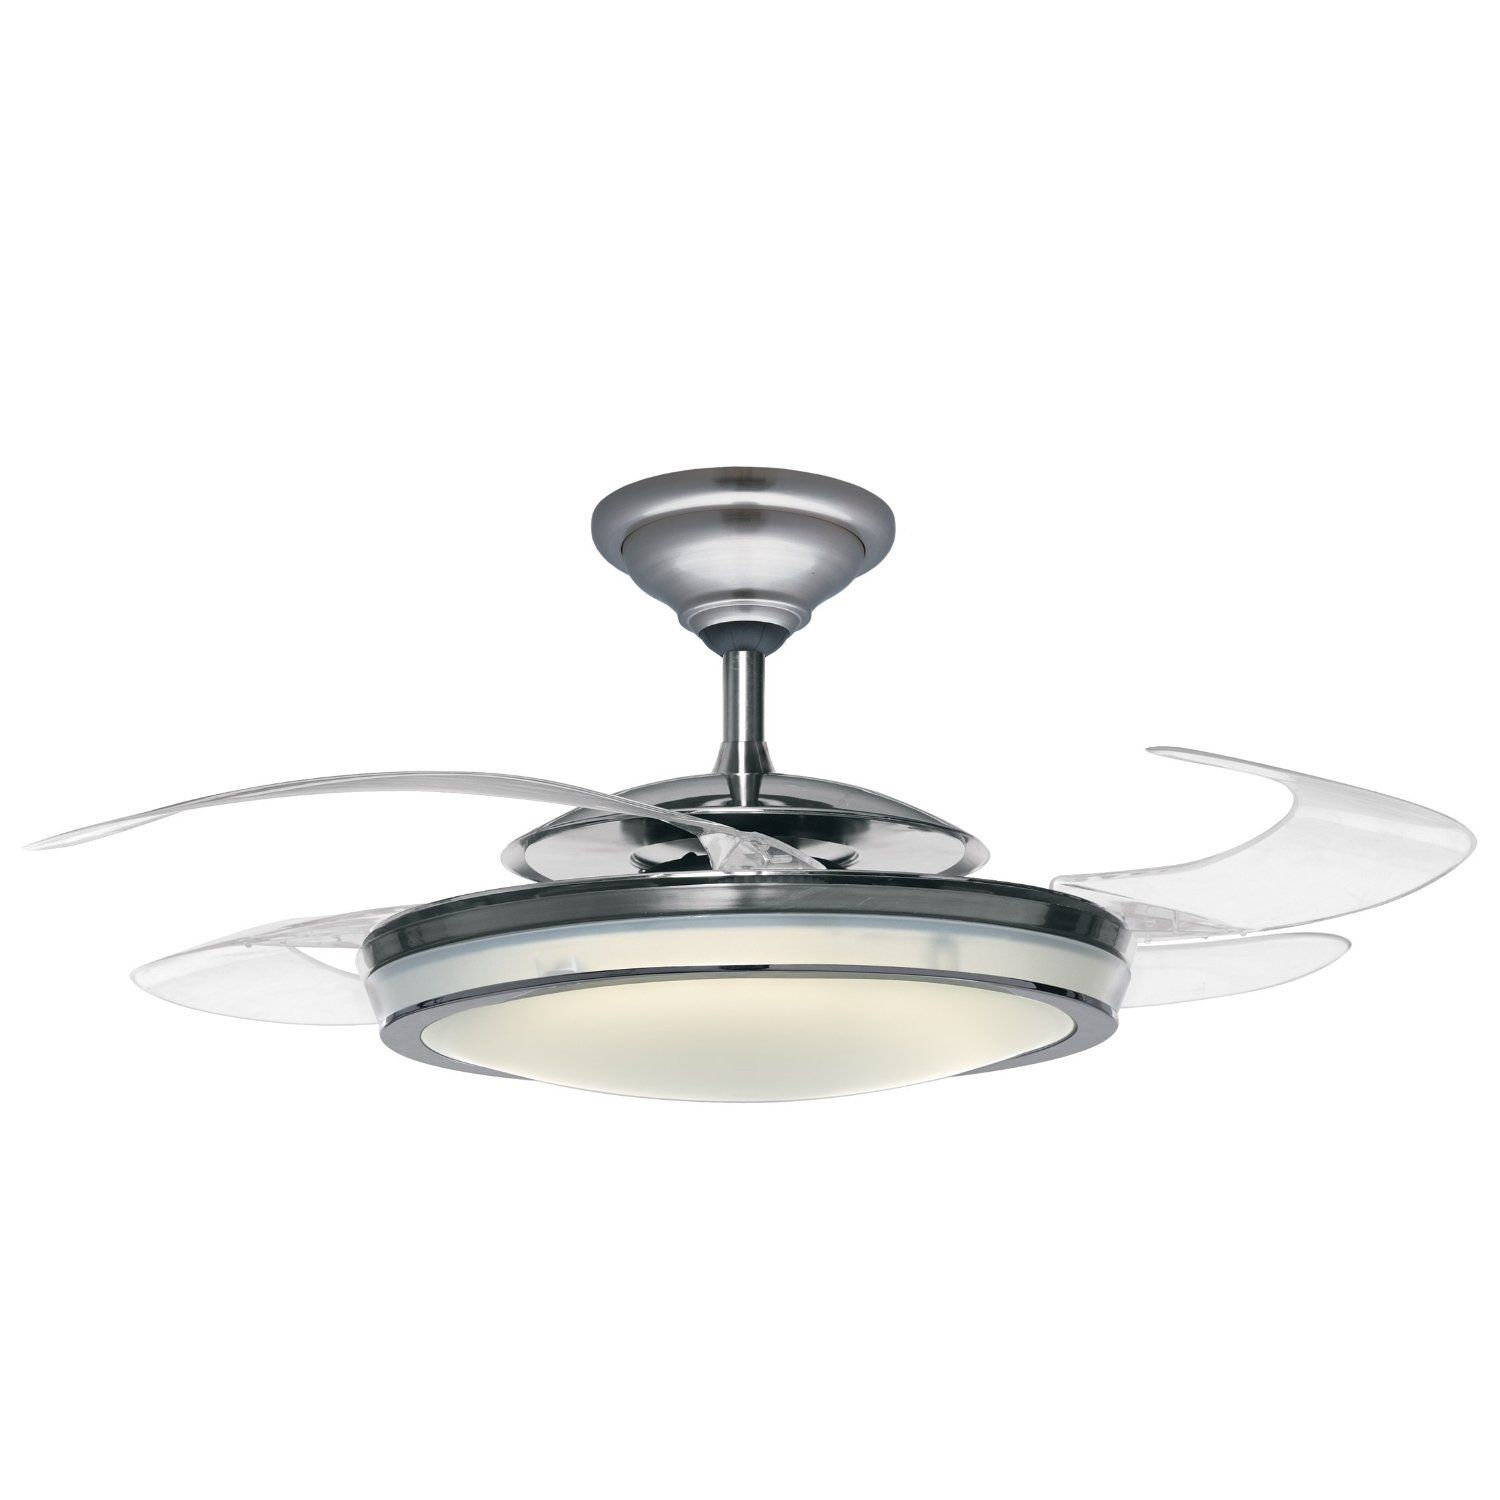 Amazon Hunter Fanaway Ceiling Fan Clear Retractable Blades Brushed Chrome